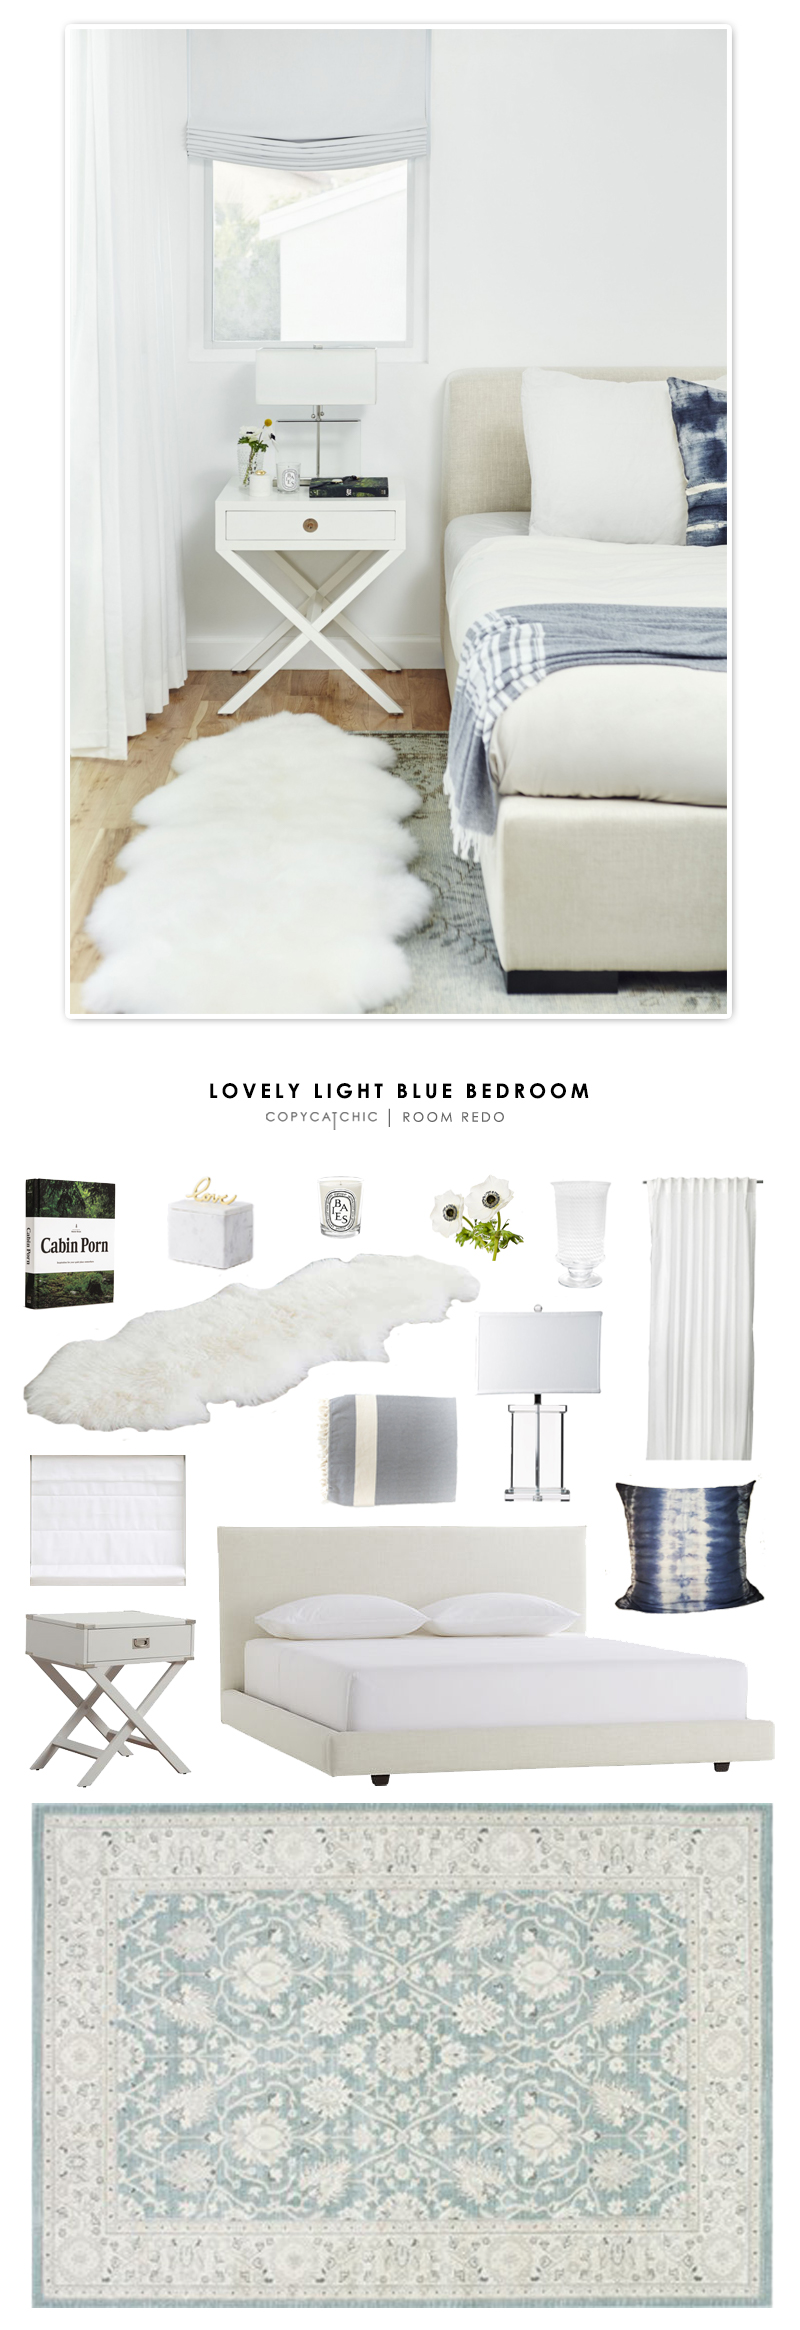 Copy Cat Chic Room Redo | Lovely Light Blue Bedroom - Copy ...